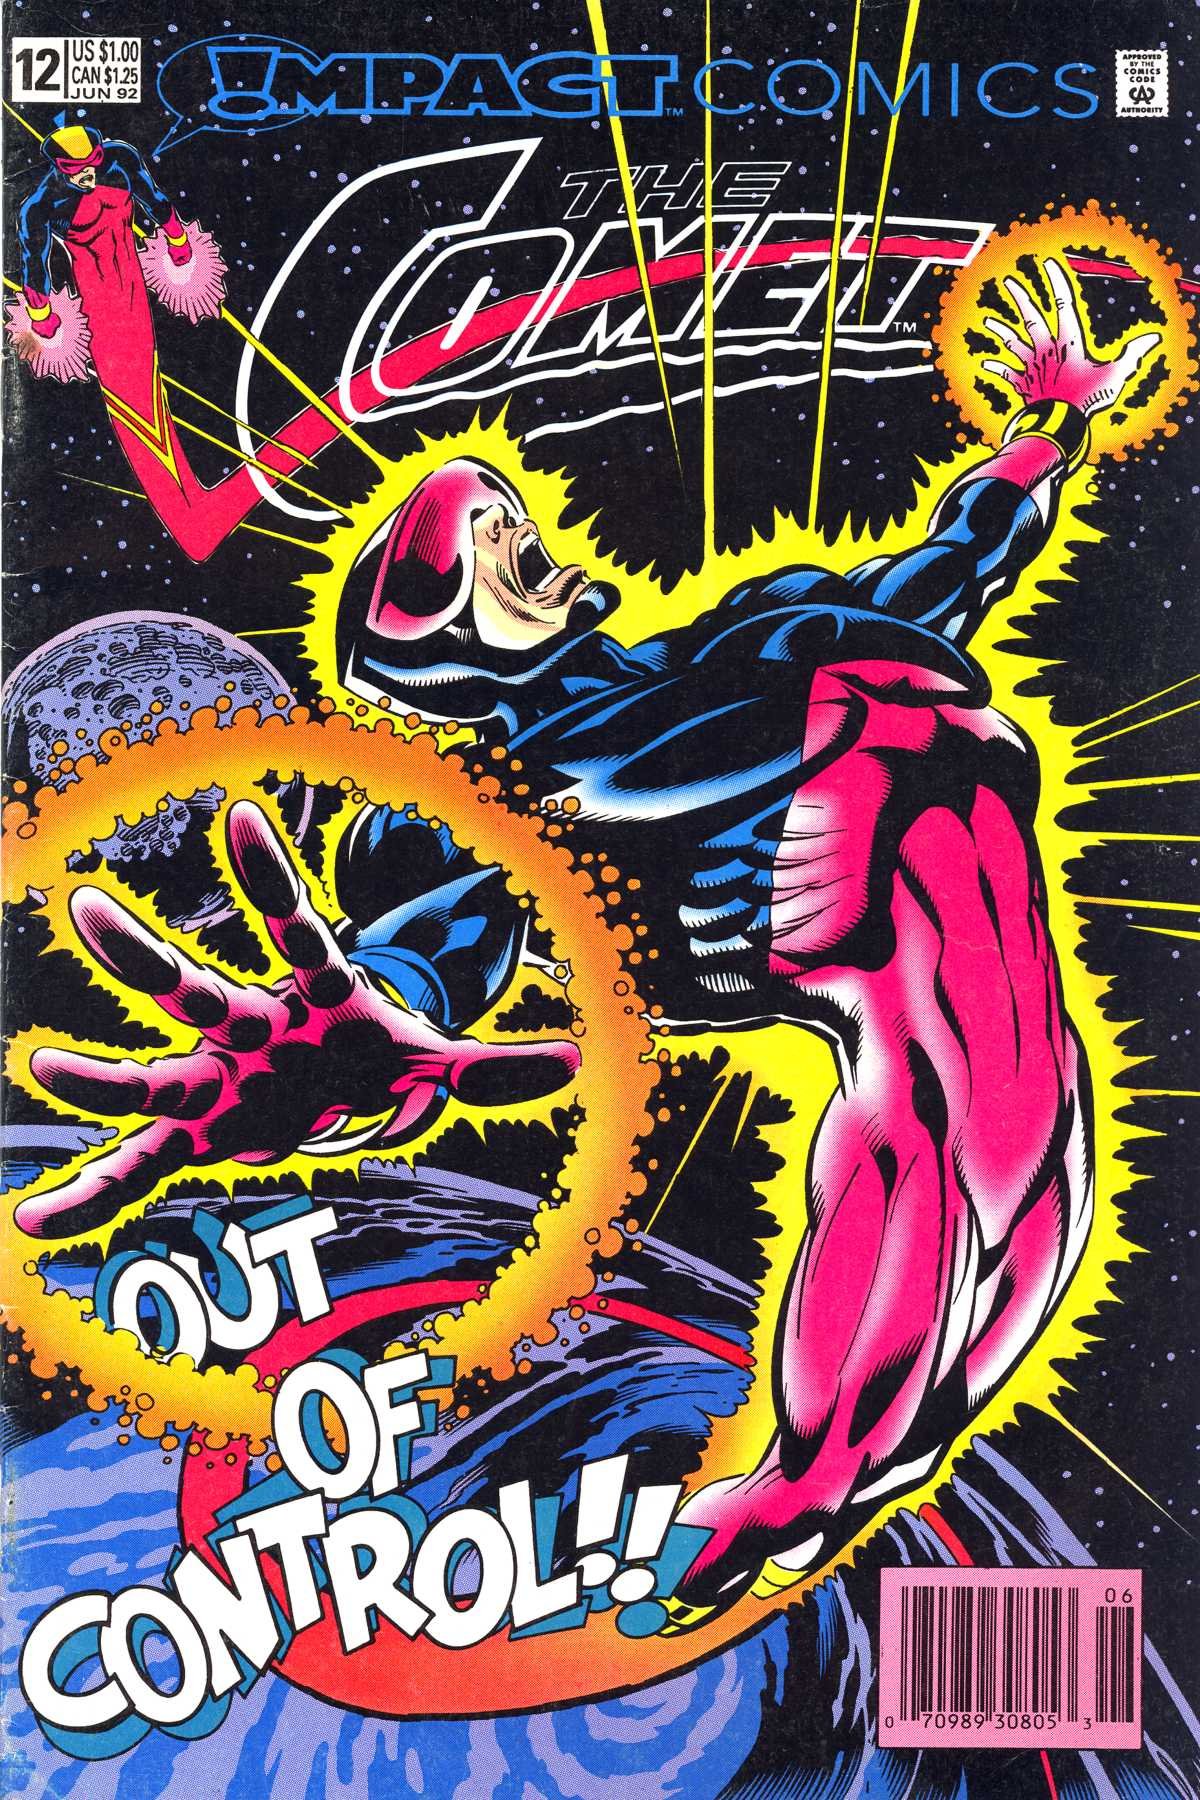 The Comet (1991) #12, cover penciled by Mike Netzer & inked by John Beatty.